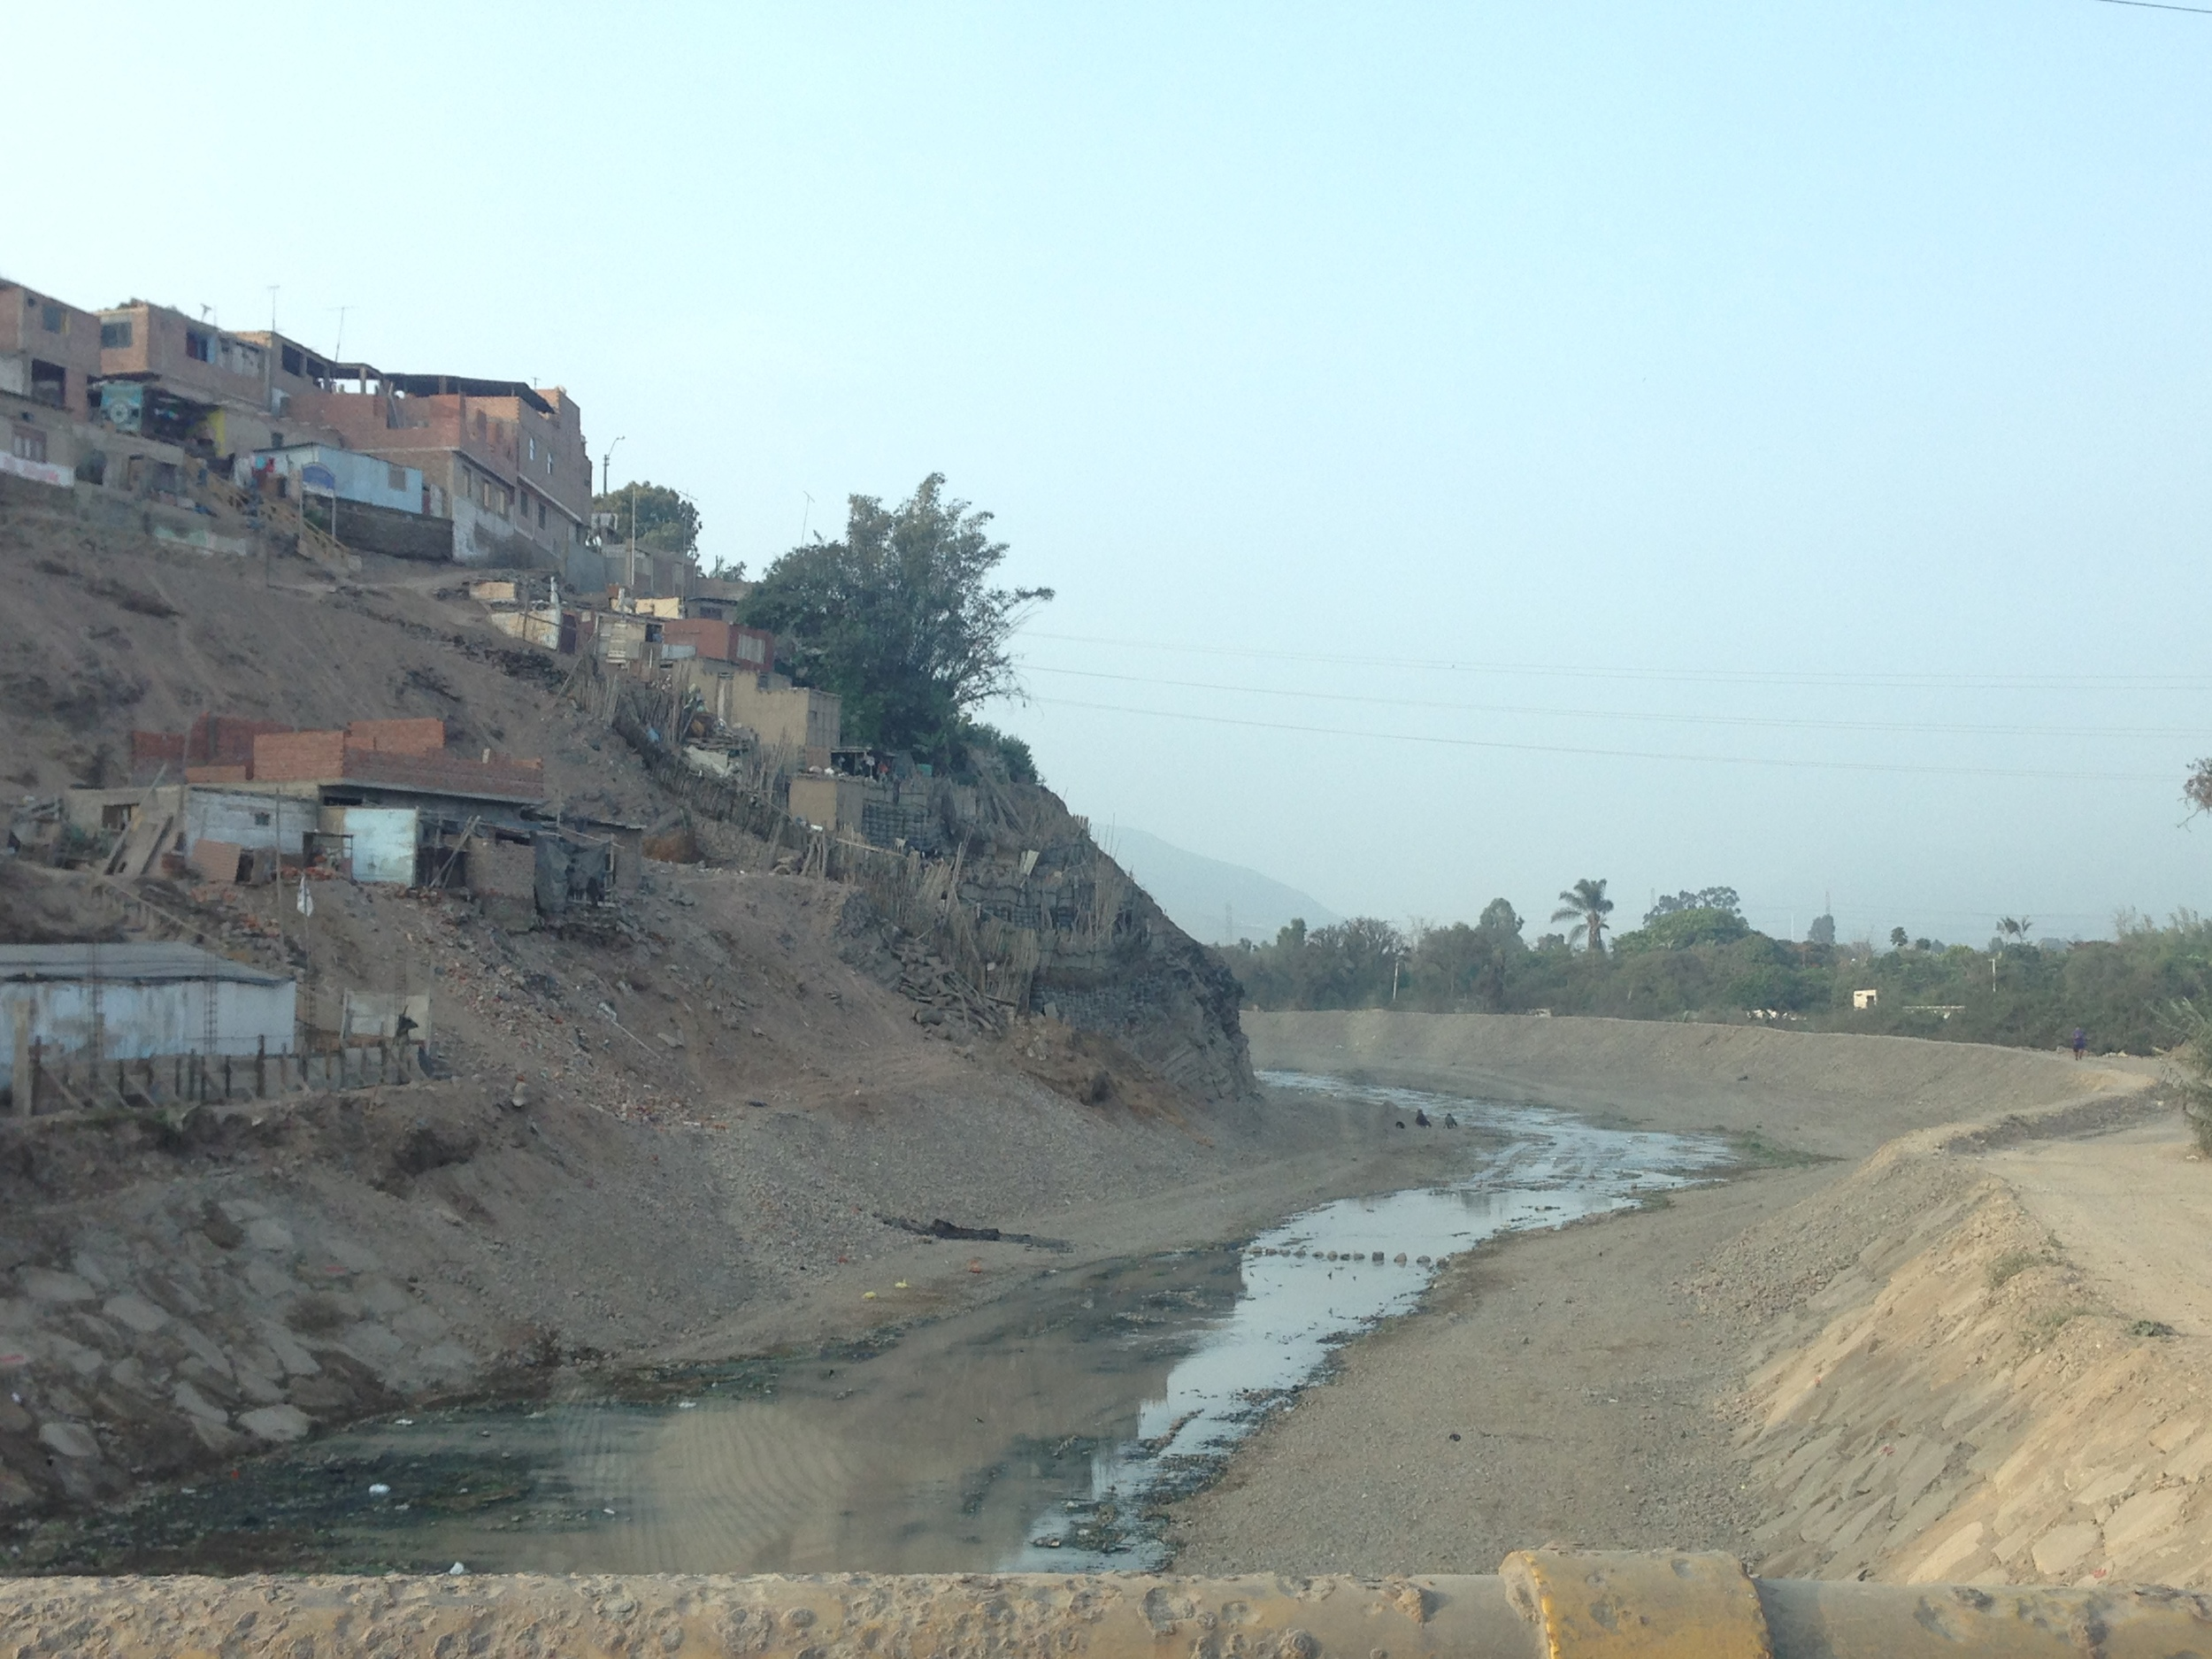 Lurin River becoming urbanized by informal development near Pachacamac.